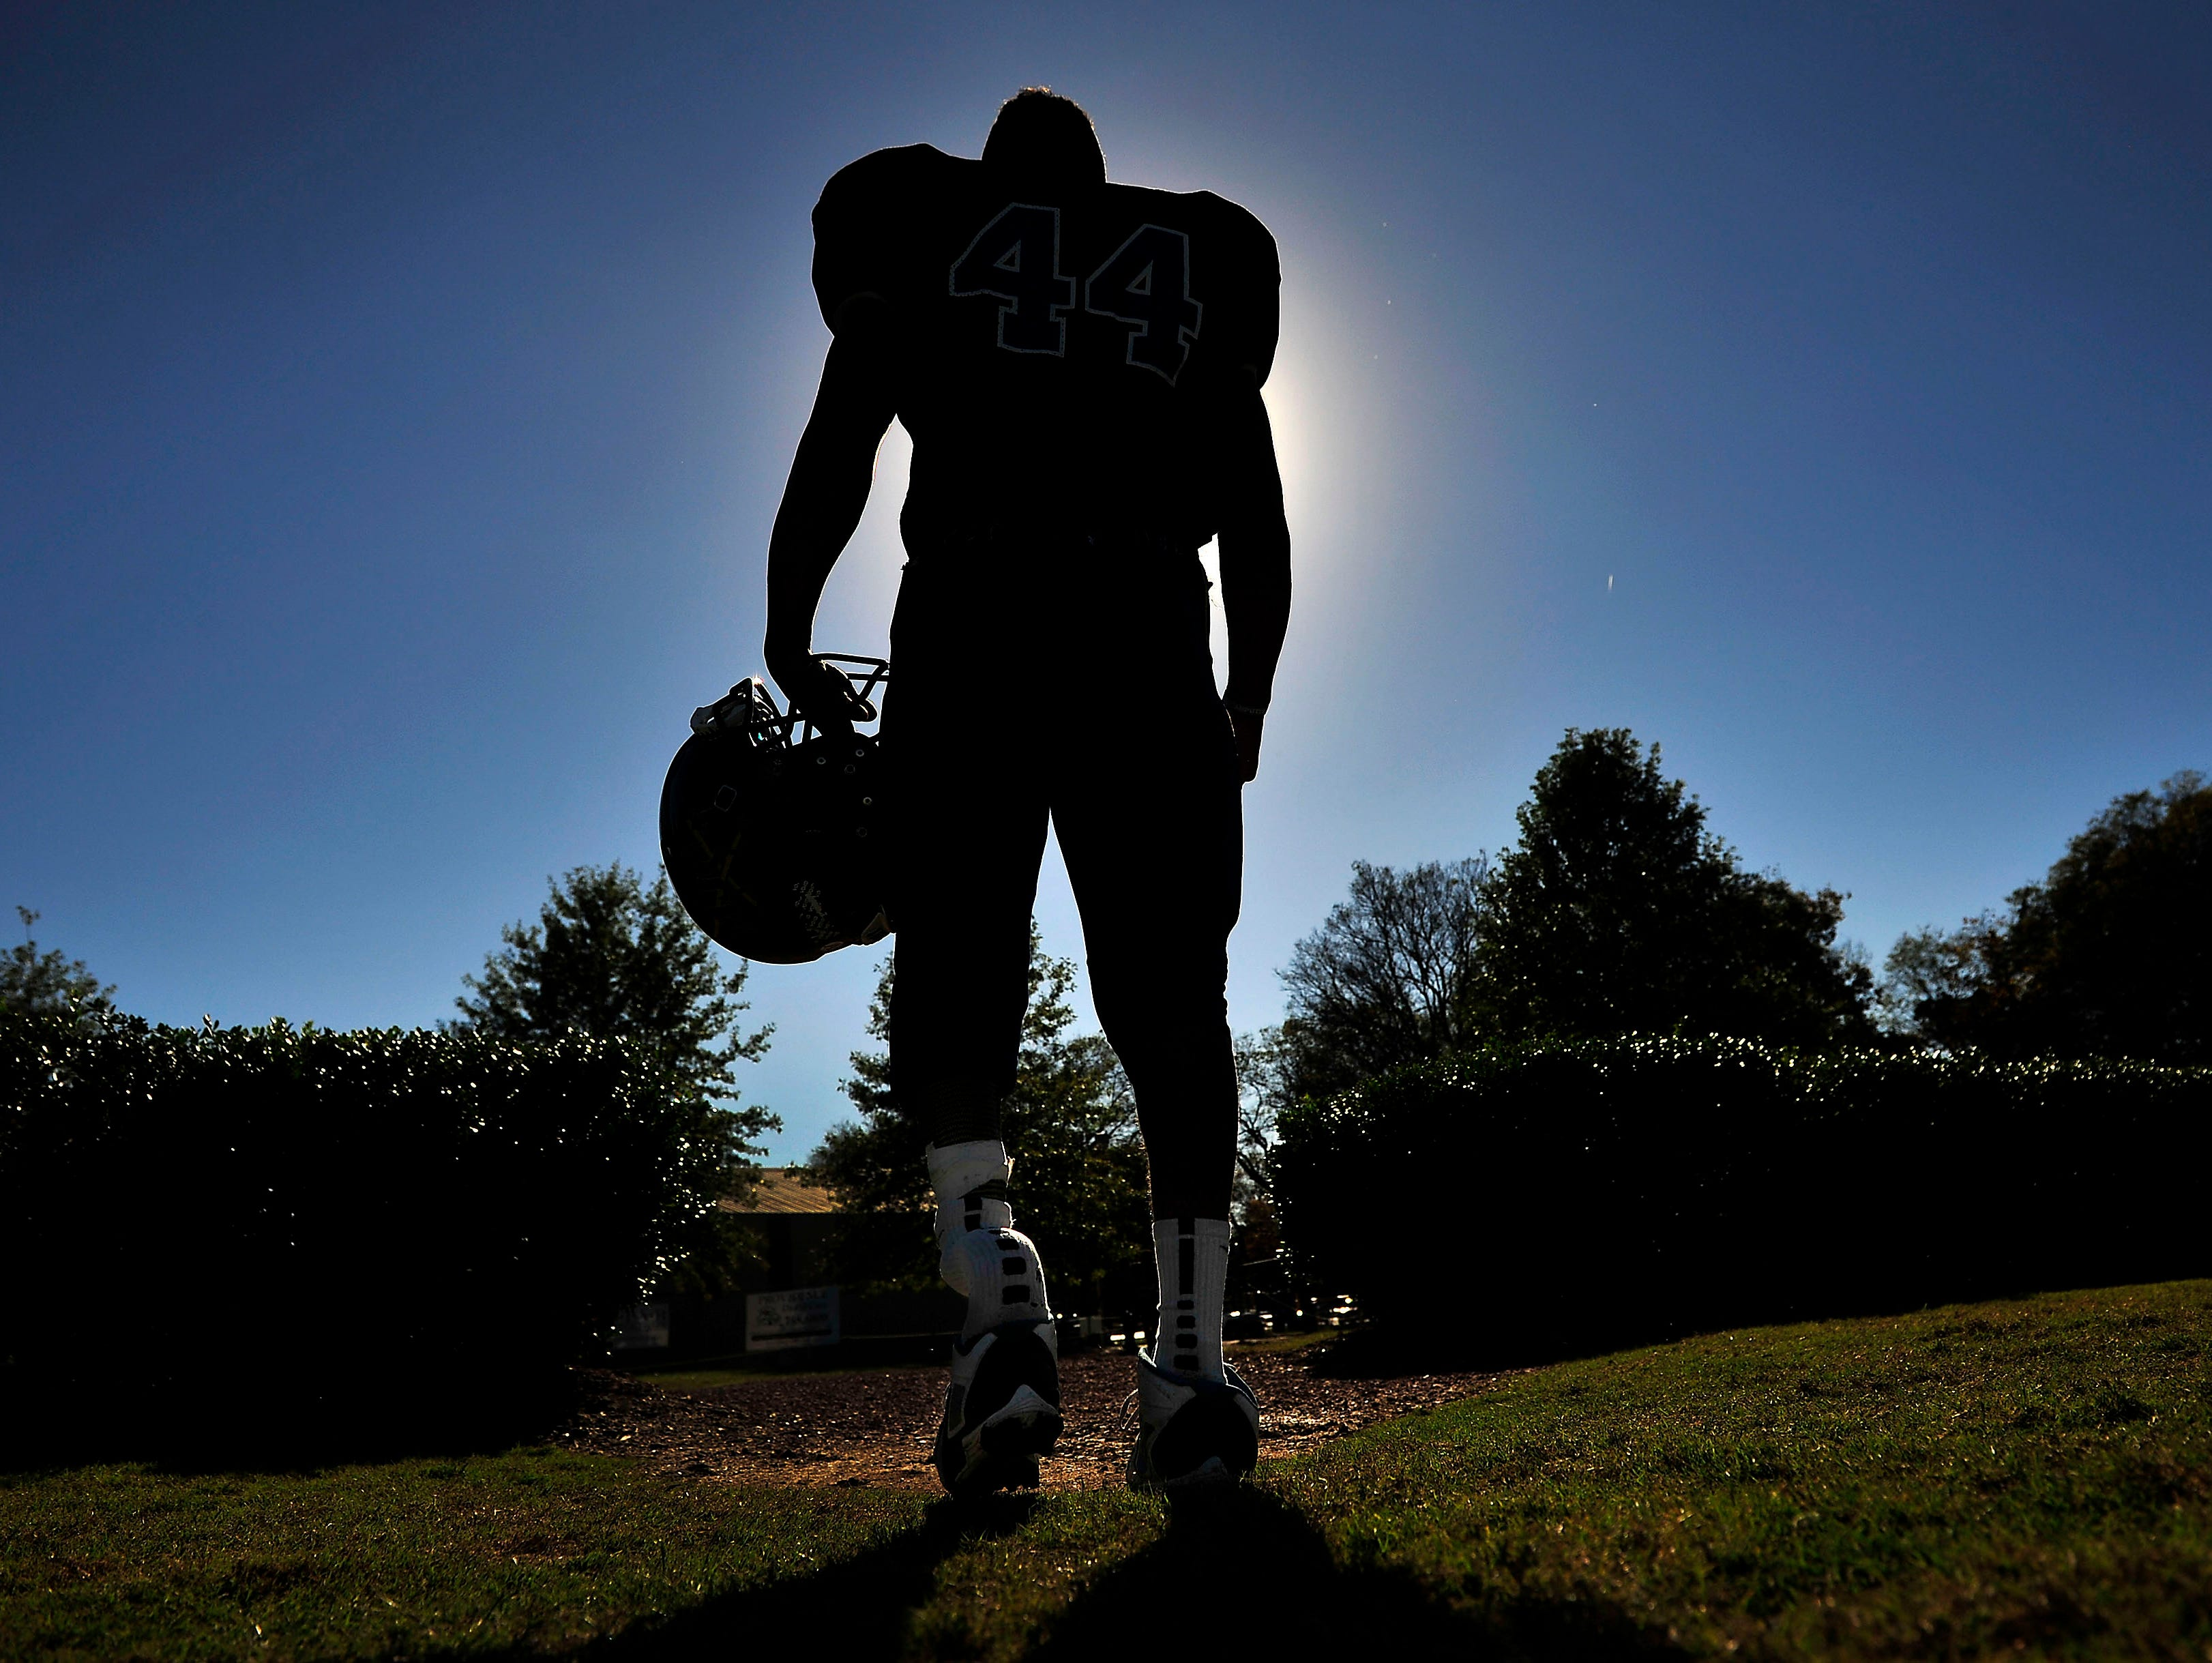 Mt. Juliet Christian Academy's Andrew Kittrell walks to the practice field.